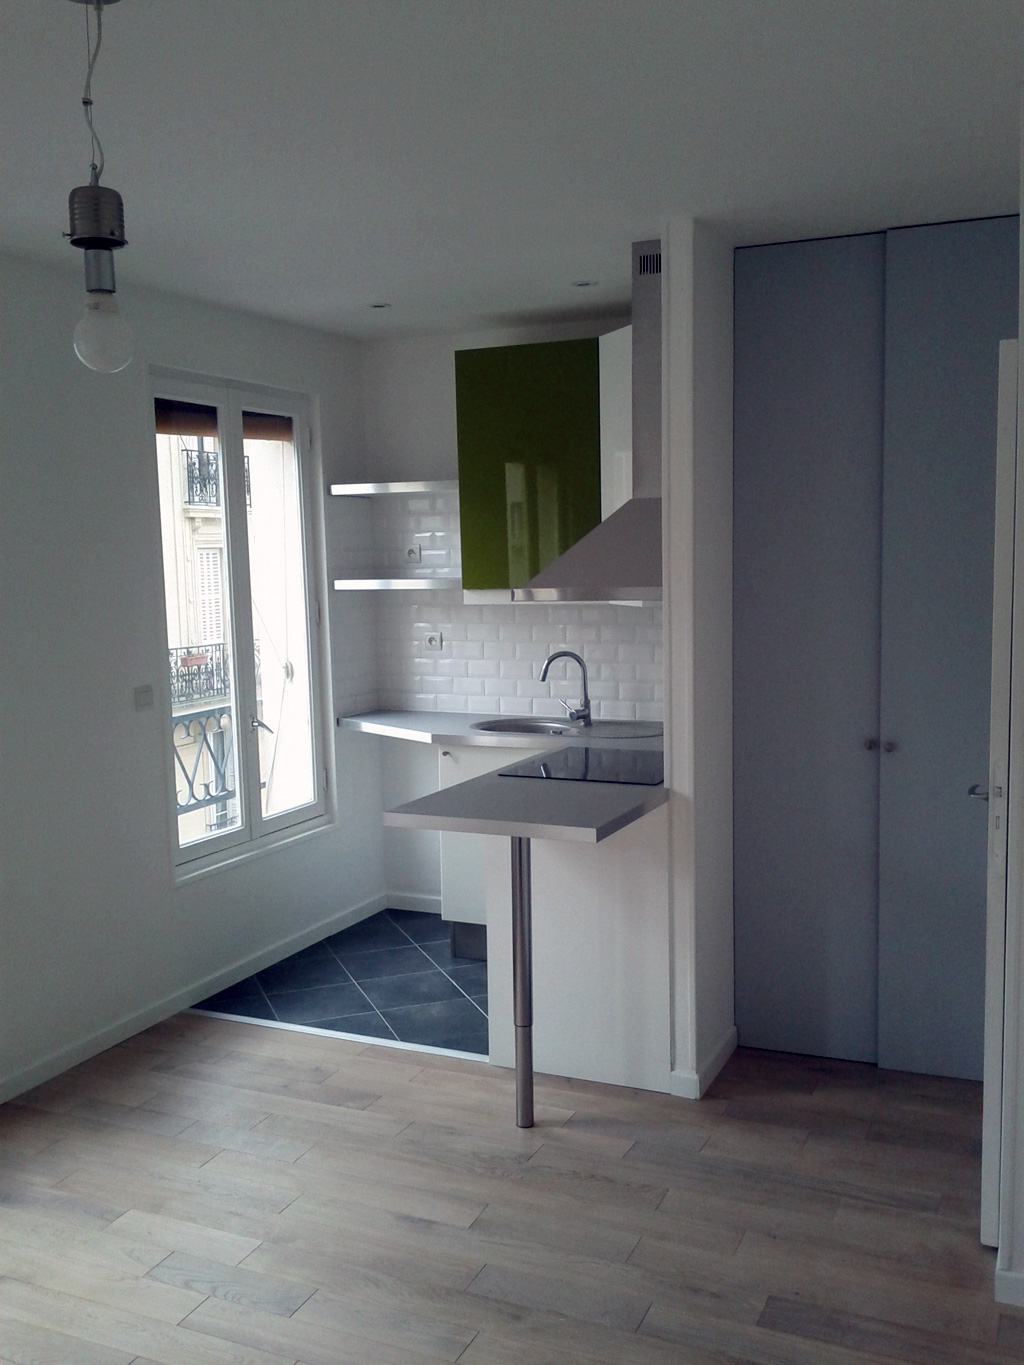 Amenagement cuisine 20m2 dcoration amenager bureau 11 asnieres sur seine lit - Amenagement chambre 20m2 ...